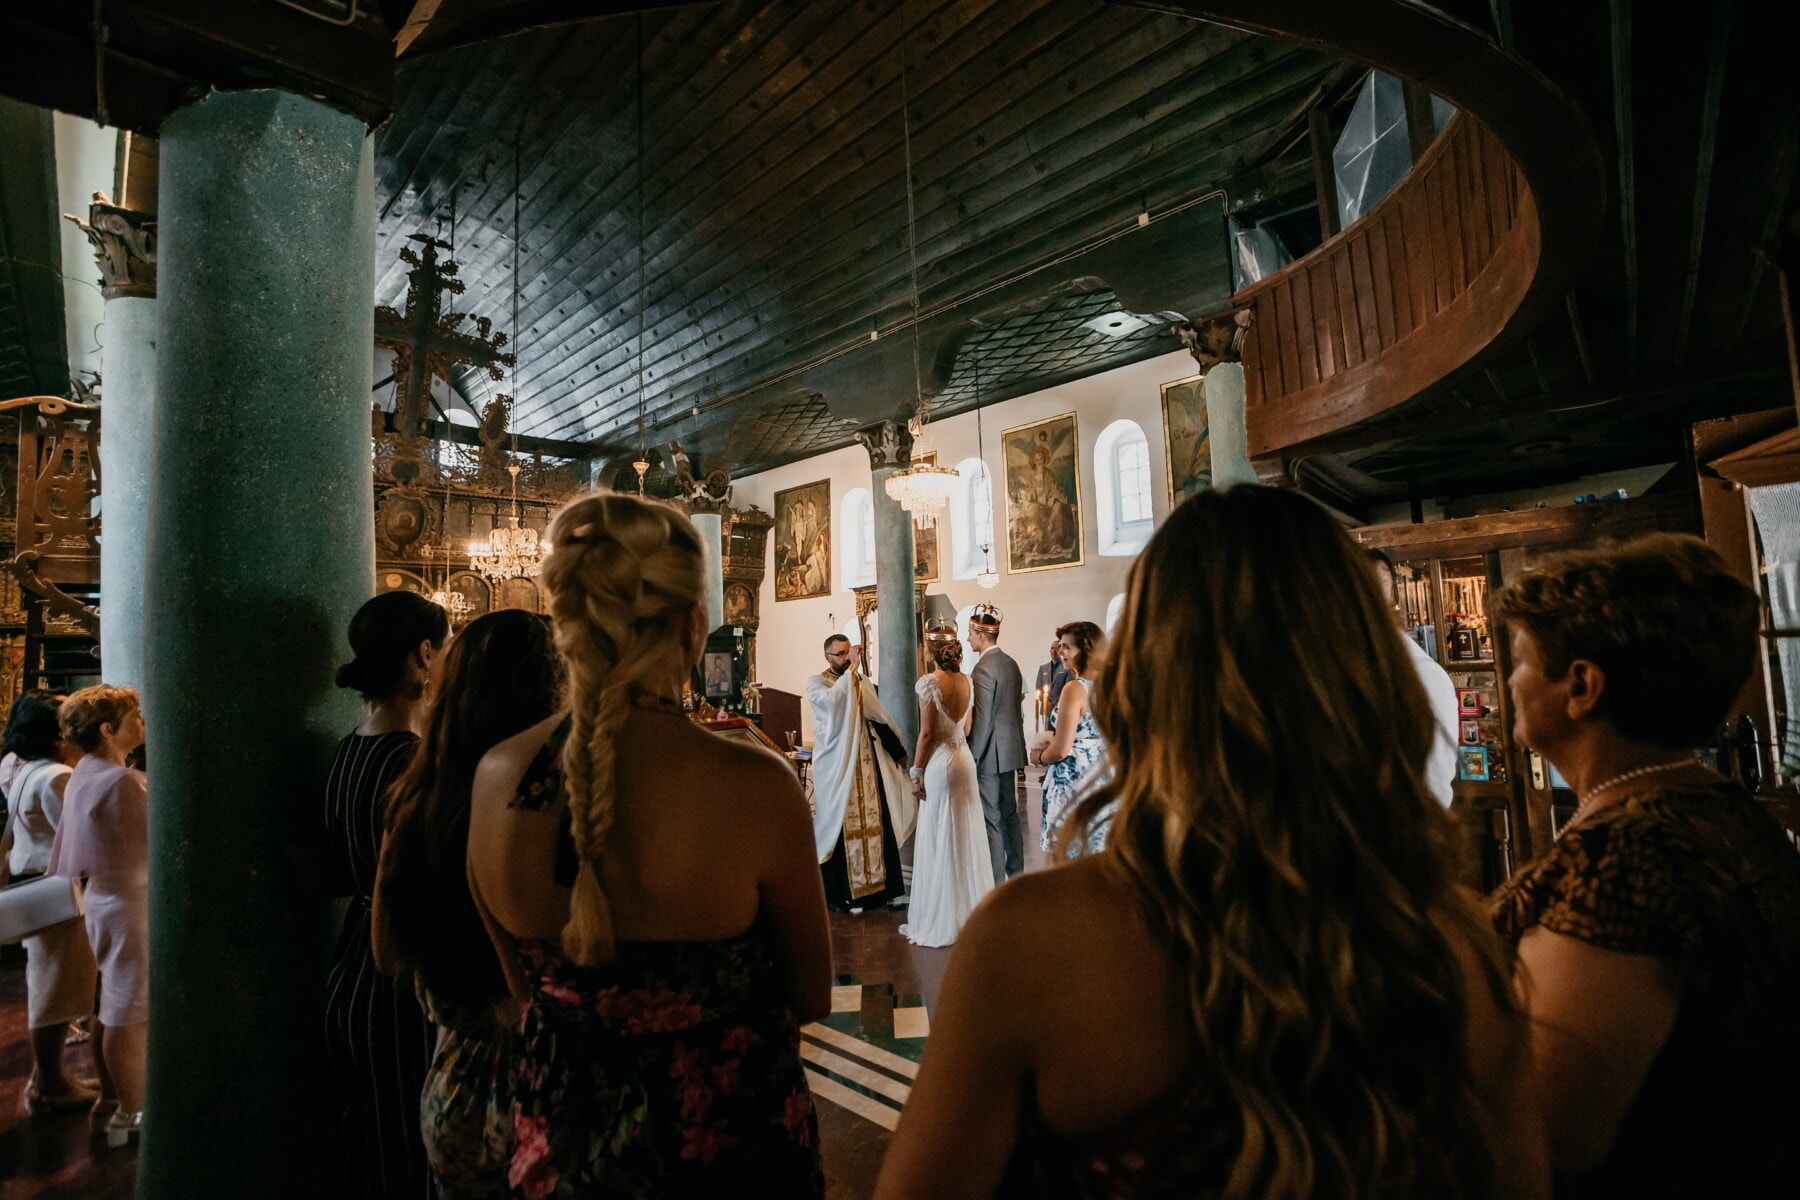 wedding venue, wedding, church, orthodox, crowd, monastery, group, people, woman, indoors